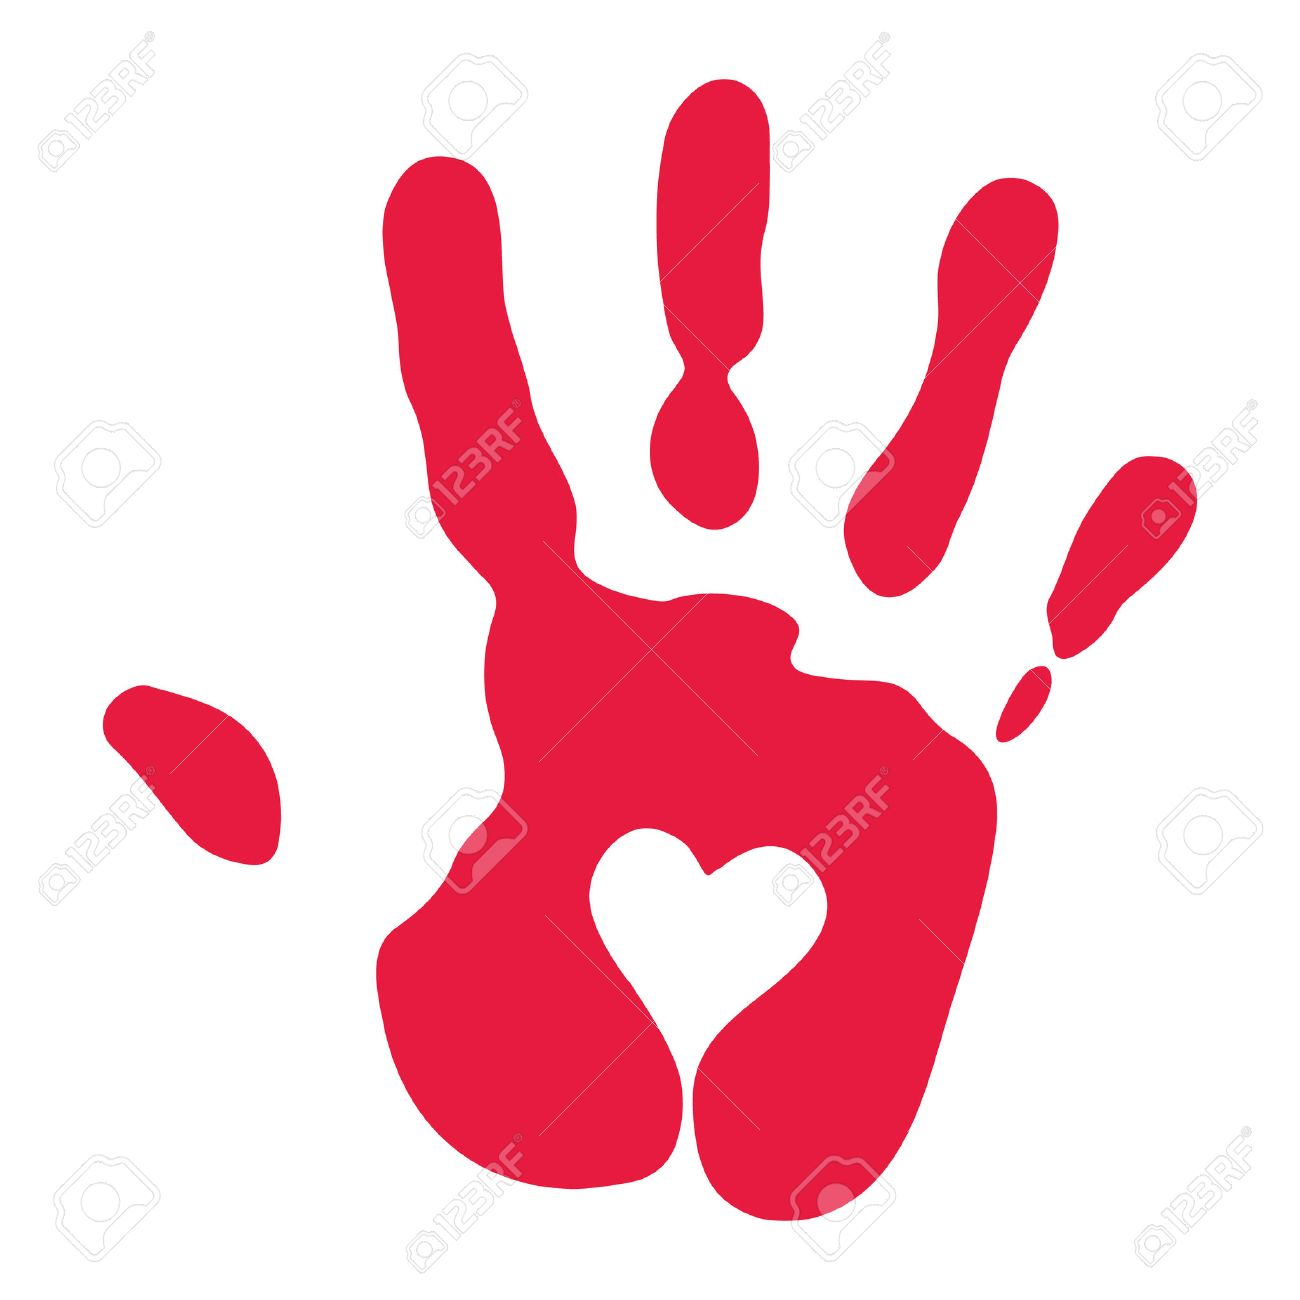 red handprint with heart symbol royalty free cliparts vectors and rh 123rf com hand print vector art handprint vector free